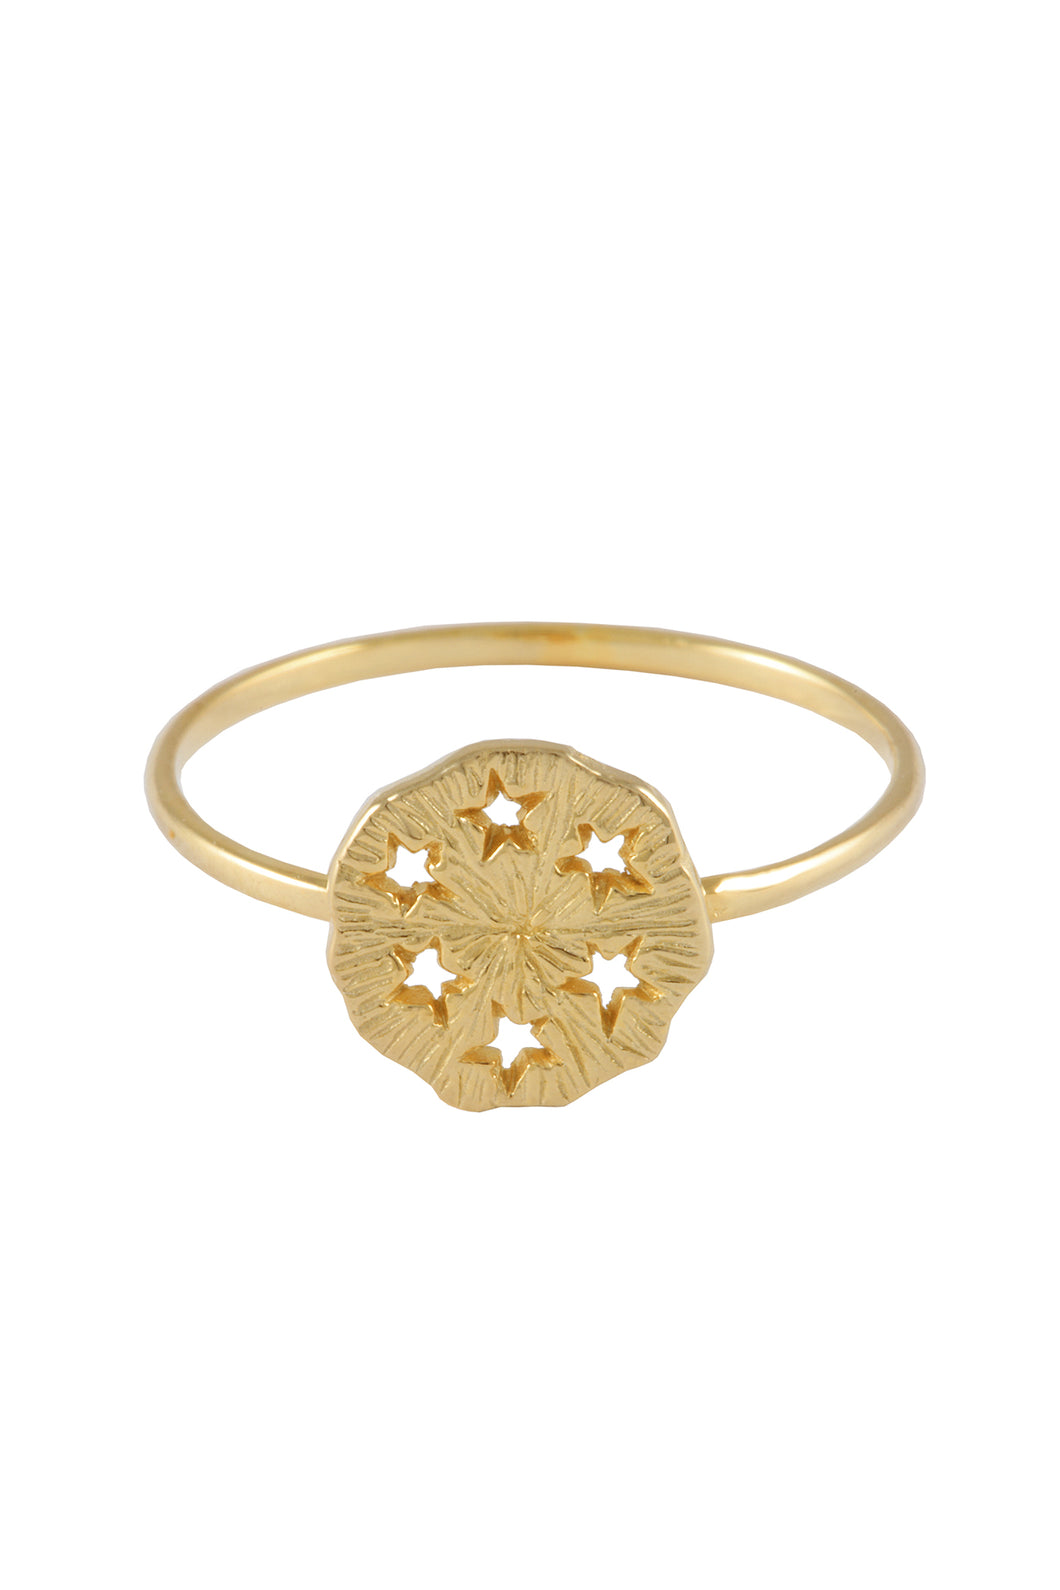 Full moon ring. Gold plated